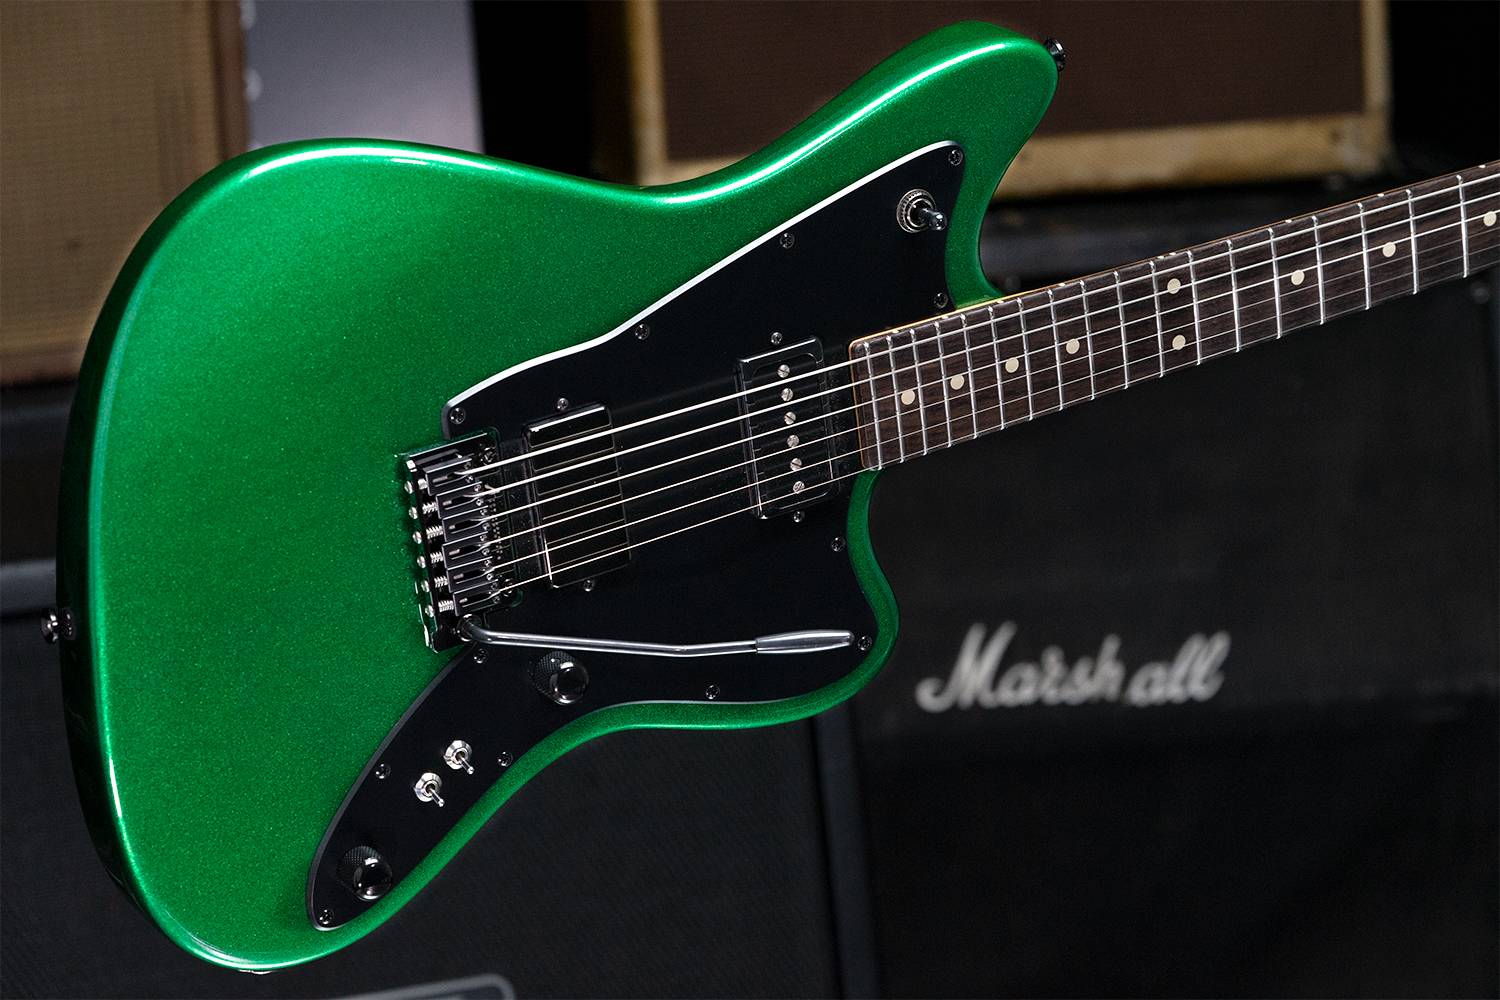 09-19-18A_ba_Raven_Metallic Green.jpg